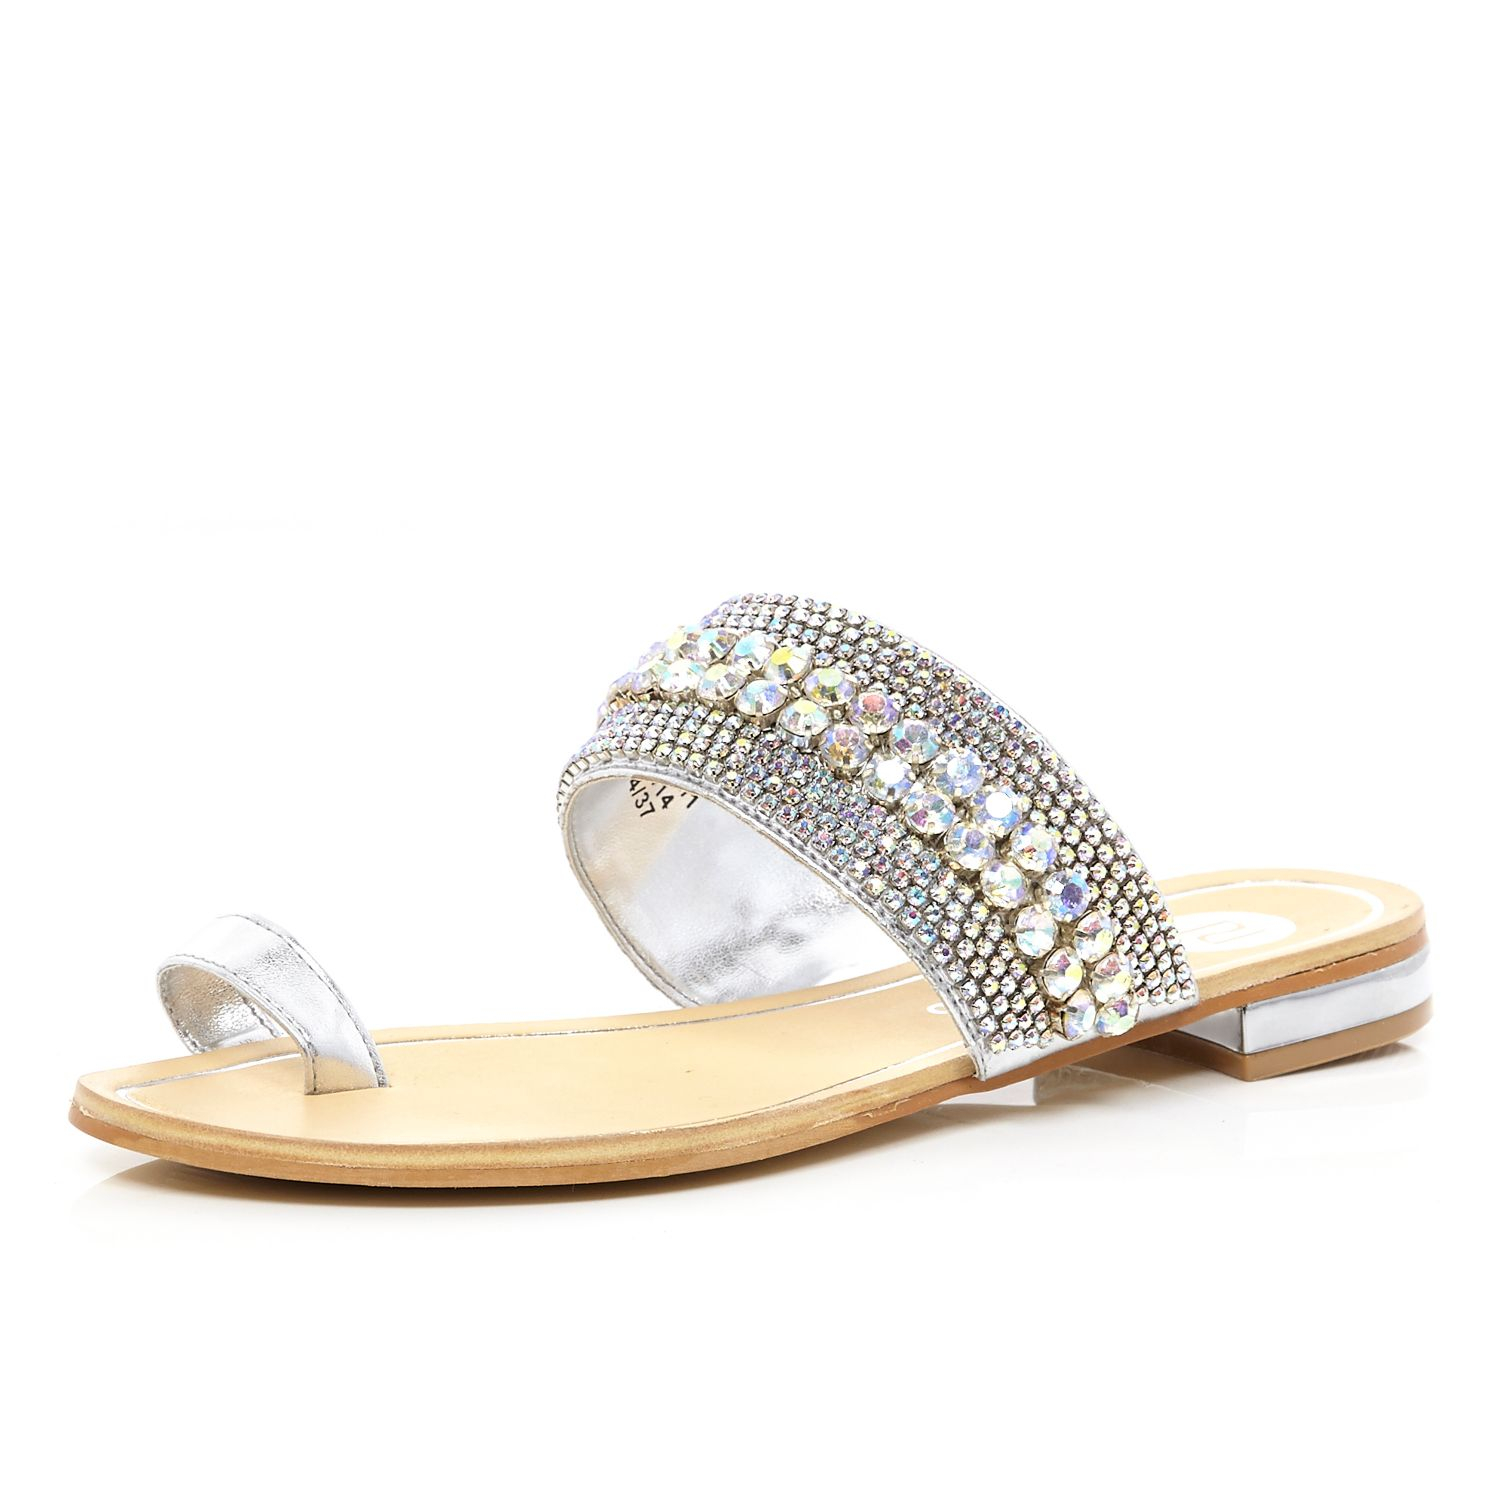 cbdf6e748902 River Island Silver Embellished Toe Loop Sandals in Metallic - Lyst